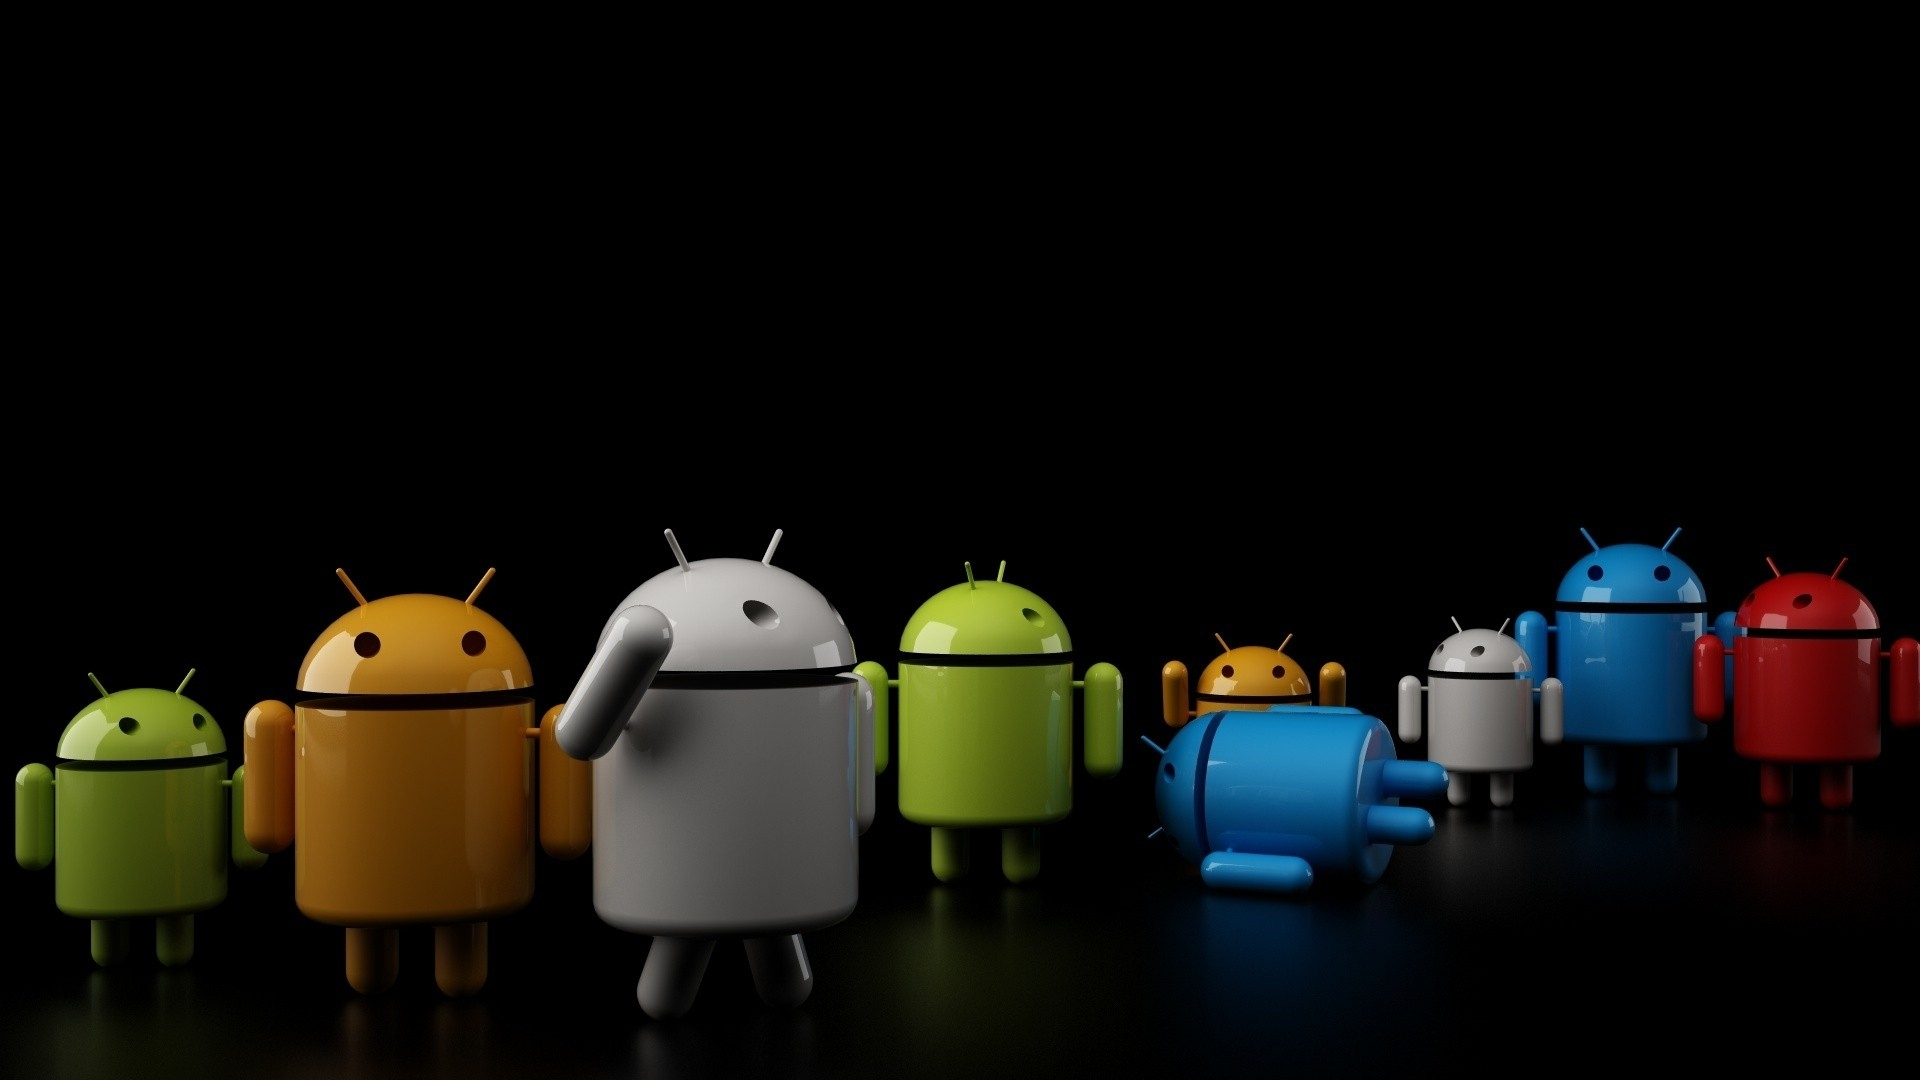 Best Wallpaper Apps for Android Technobezz 1920x1080